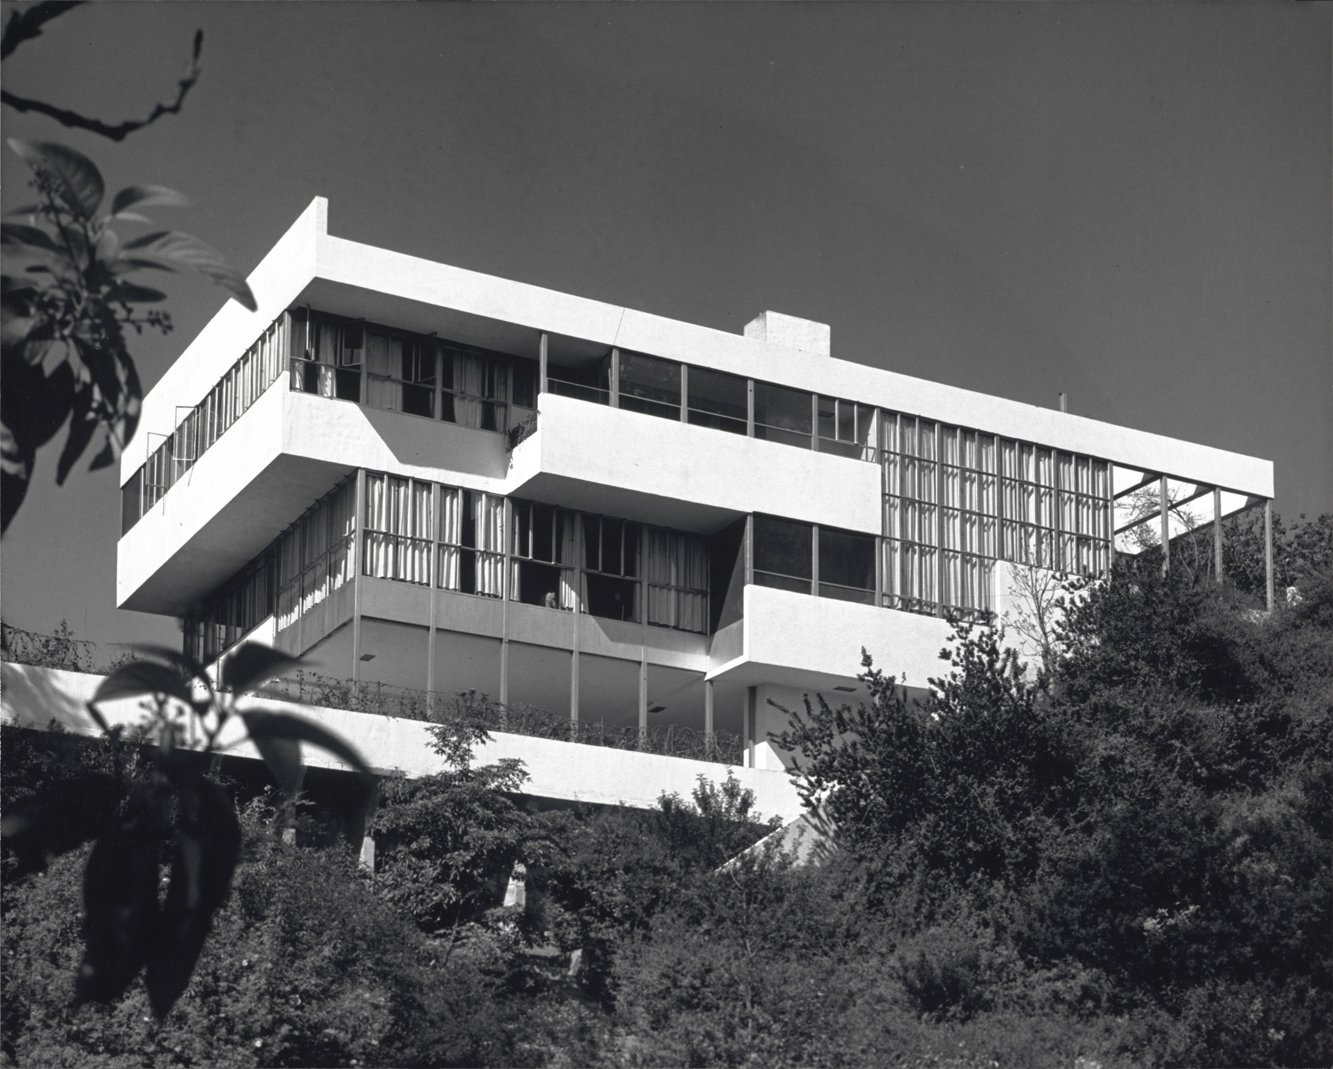 The owners of the 1929 Lovell Health house agreed to a rare tour of their home as part of the 85th anniversary celebration.  Photo by Julius Shulman, courtesy Getty Institute.  Don't miss a word of Dwell! Download our  FREE app from iTunes, friend us on Facebook, or follow us on Twitter!